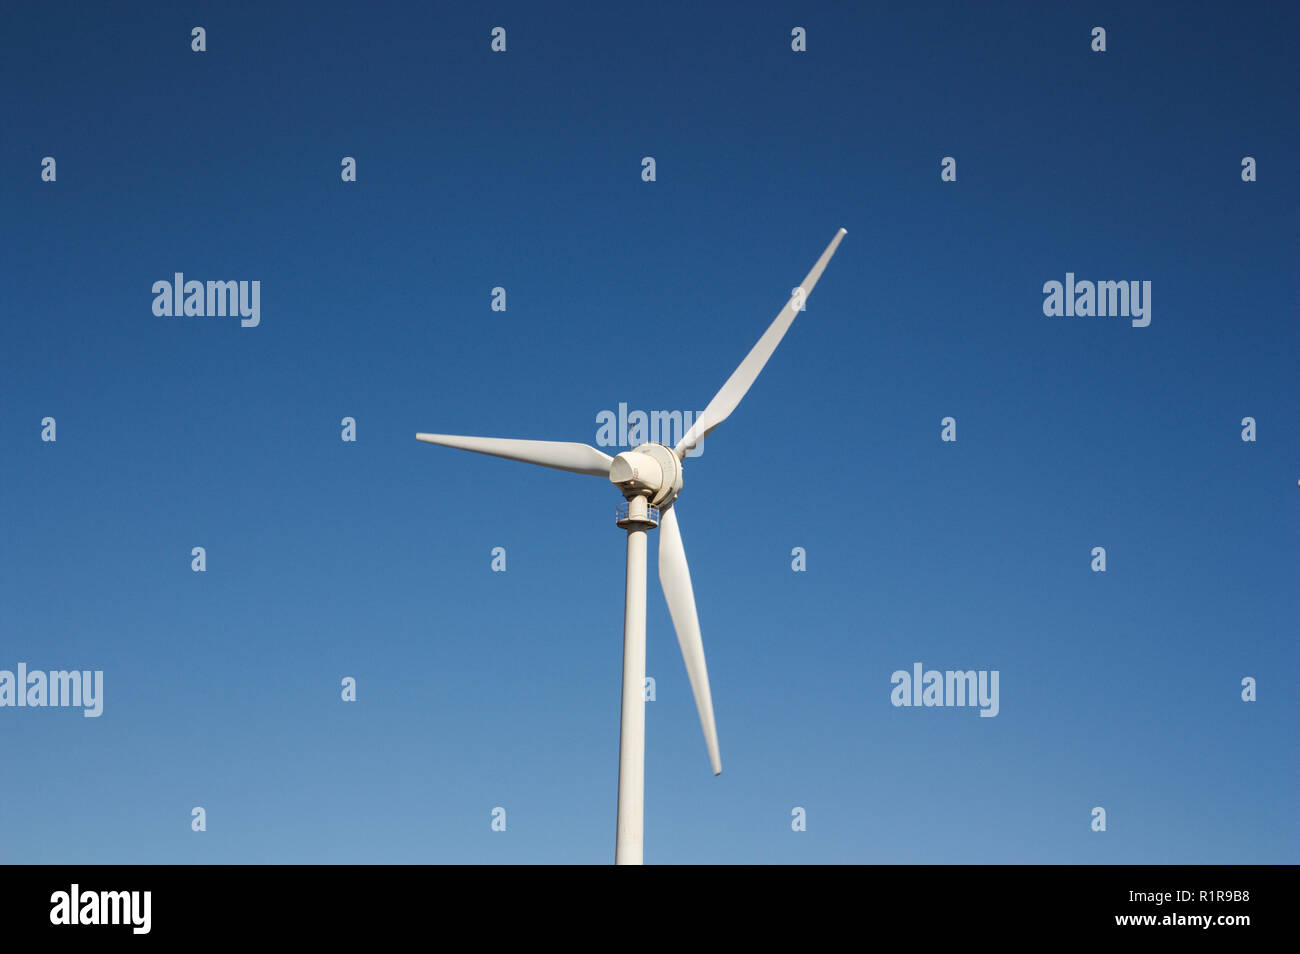 A wind turbine that rotates with the force of the wind isolated with blue sky background - Stock Image